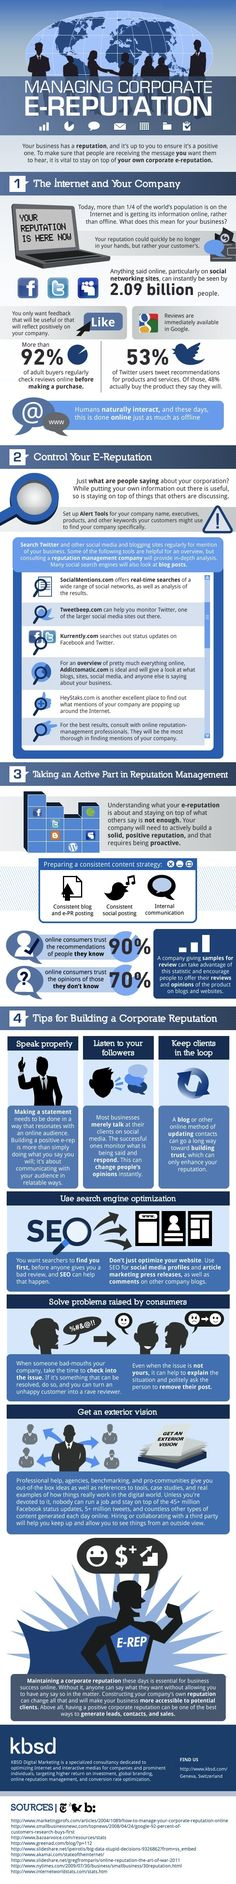 How Should You Manage Your Company's E-Reputation? #infographic